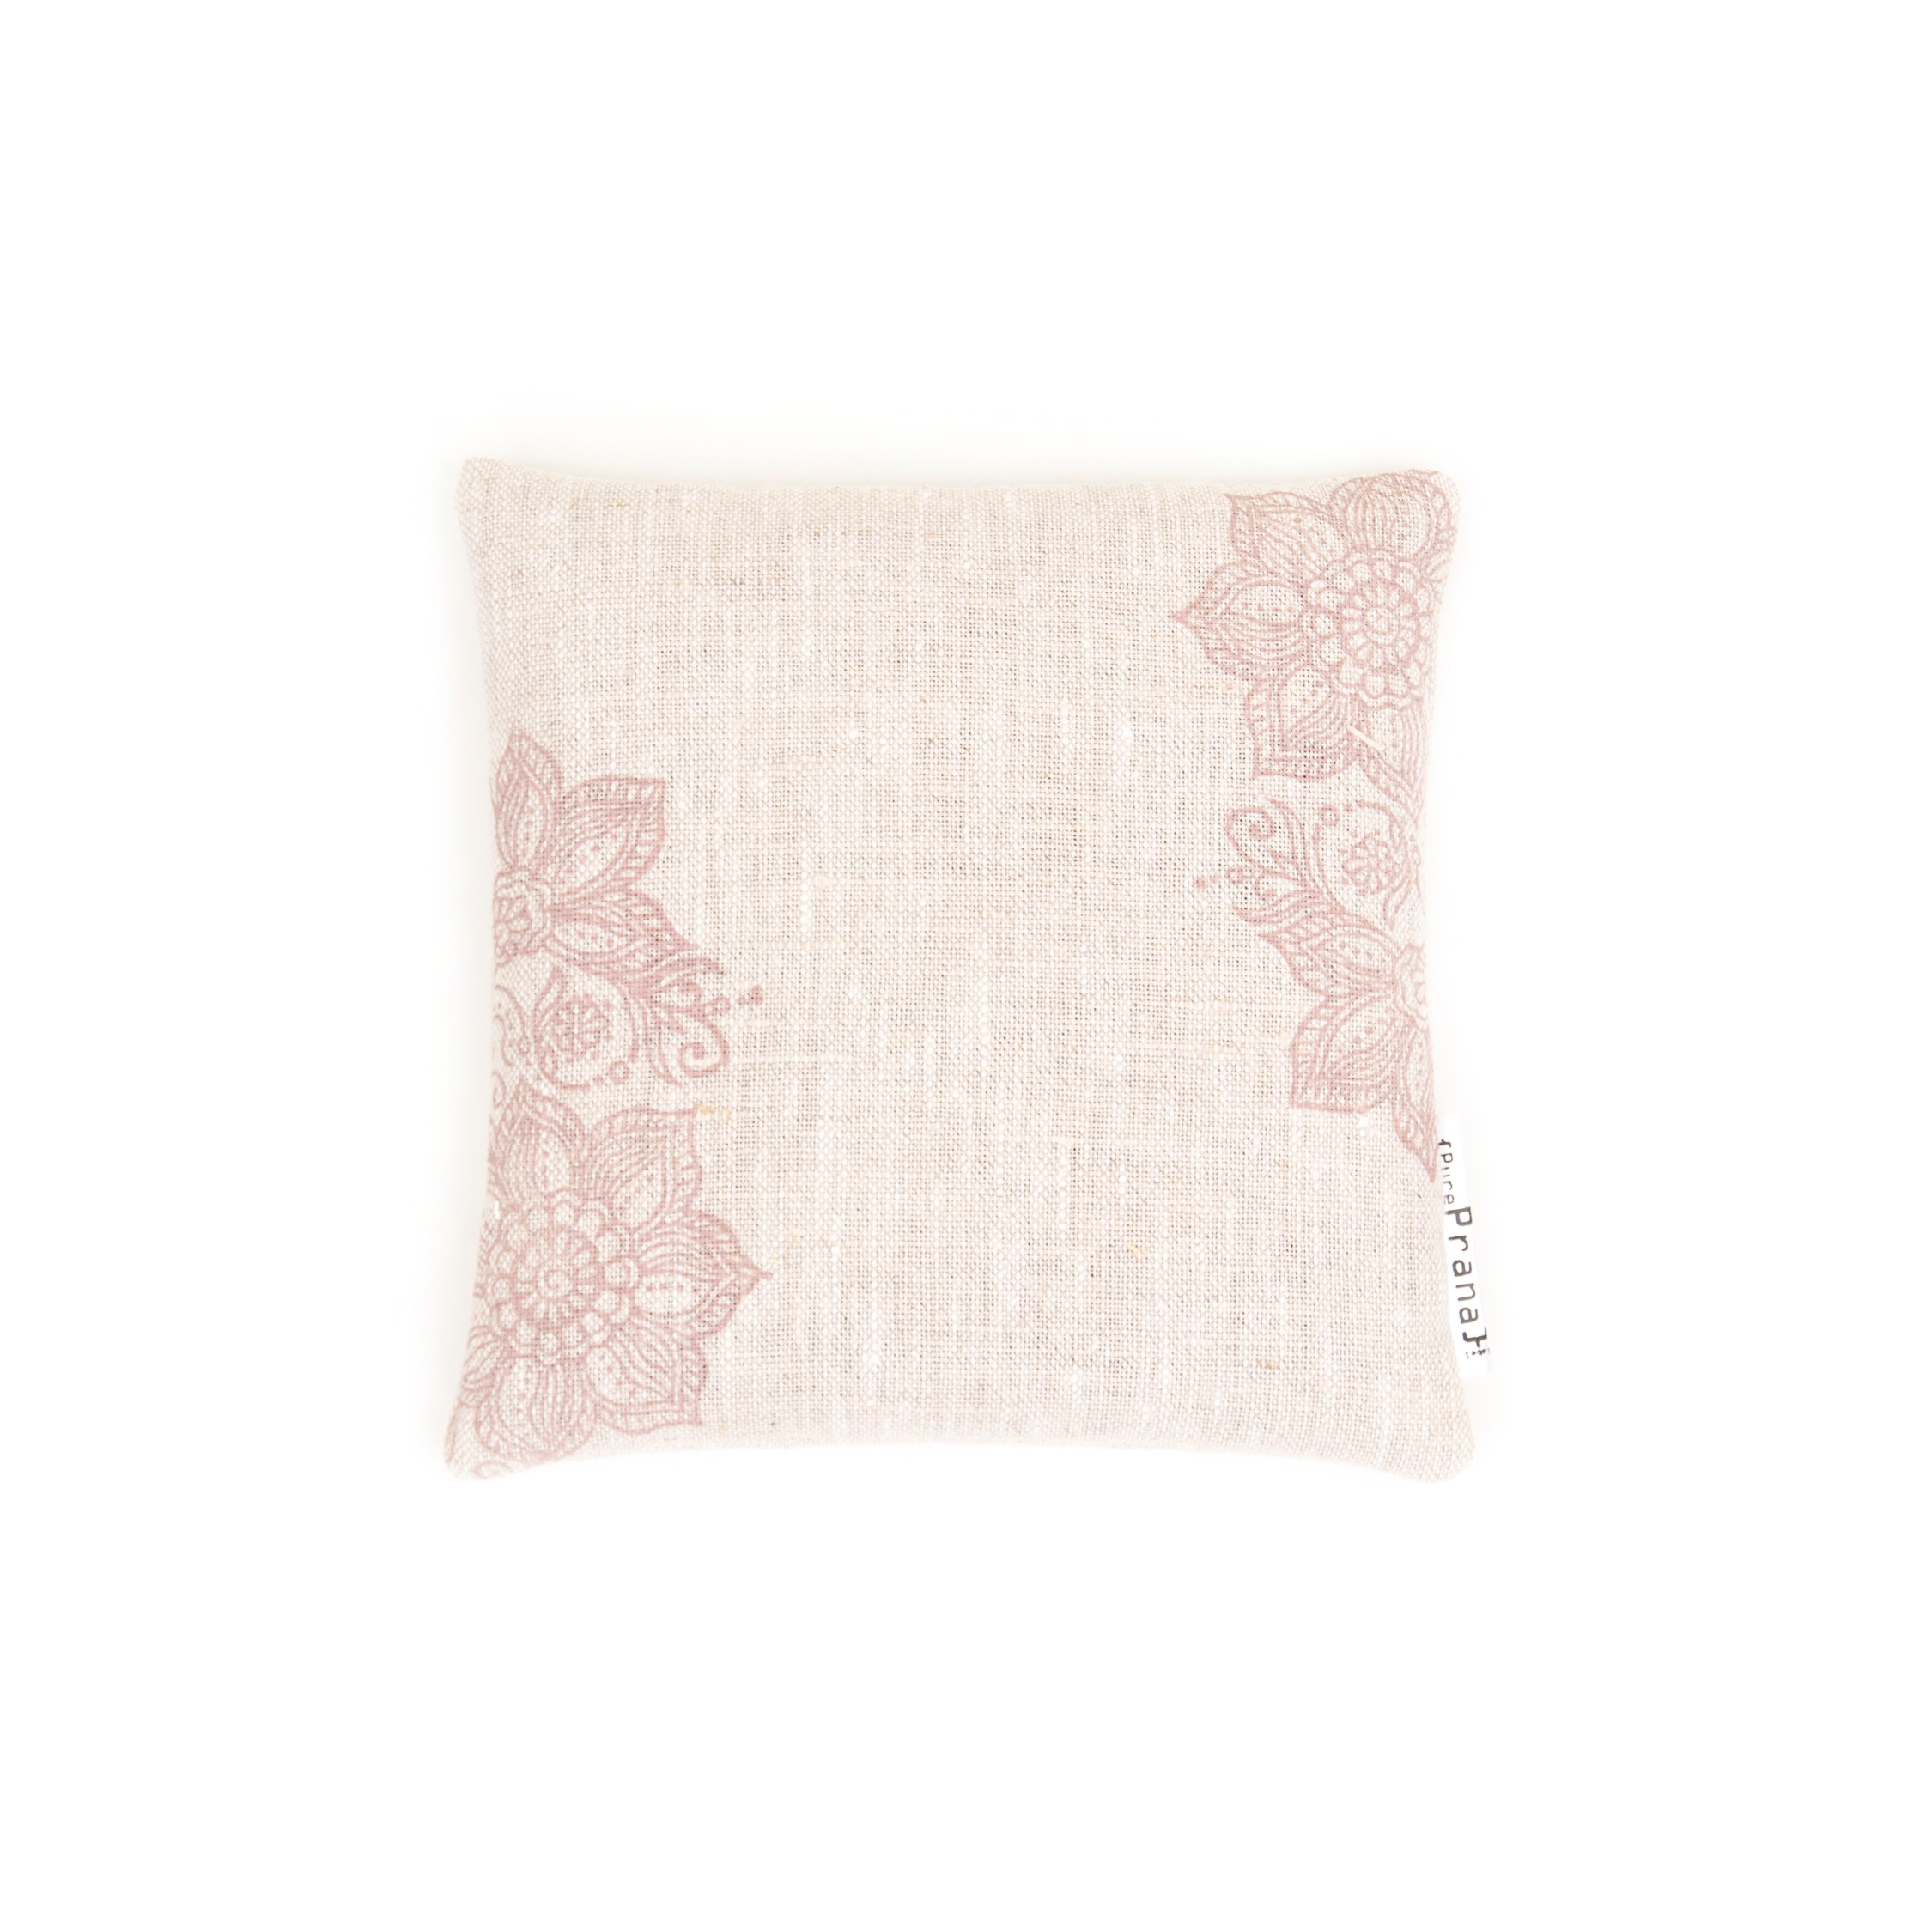 Handprinted and handmade singing bowl cushion by Pure Prana Label